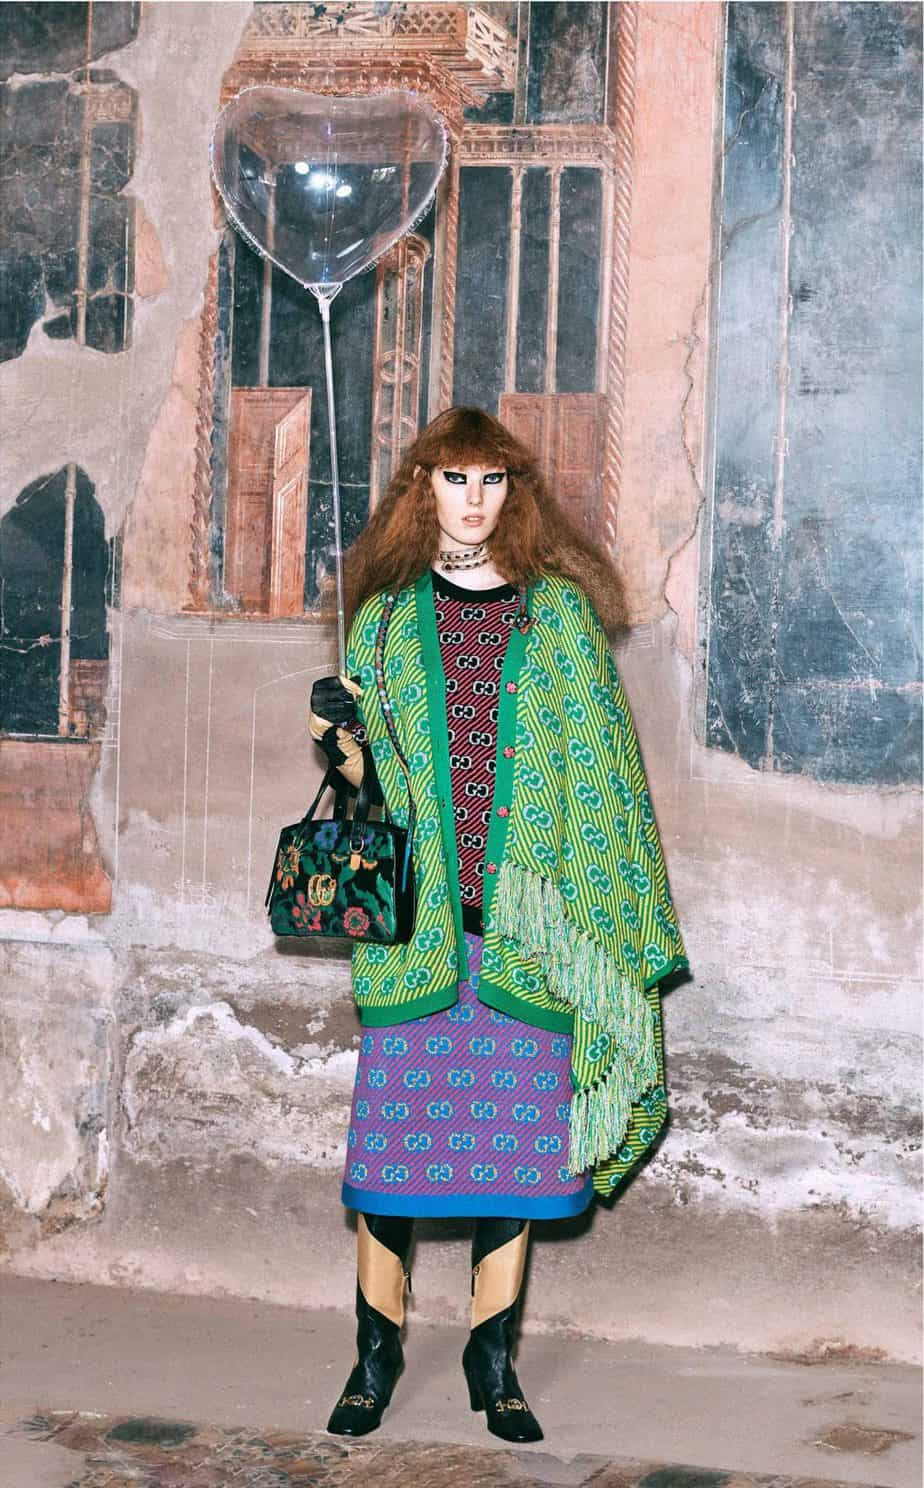 GUCCI, FALL 2019. WOMEN'S FASHION, Photographer Harmony Korine, Art Director, Christopher Simmonds - 27